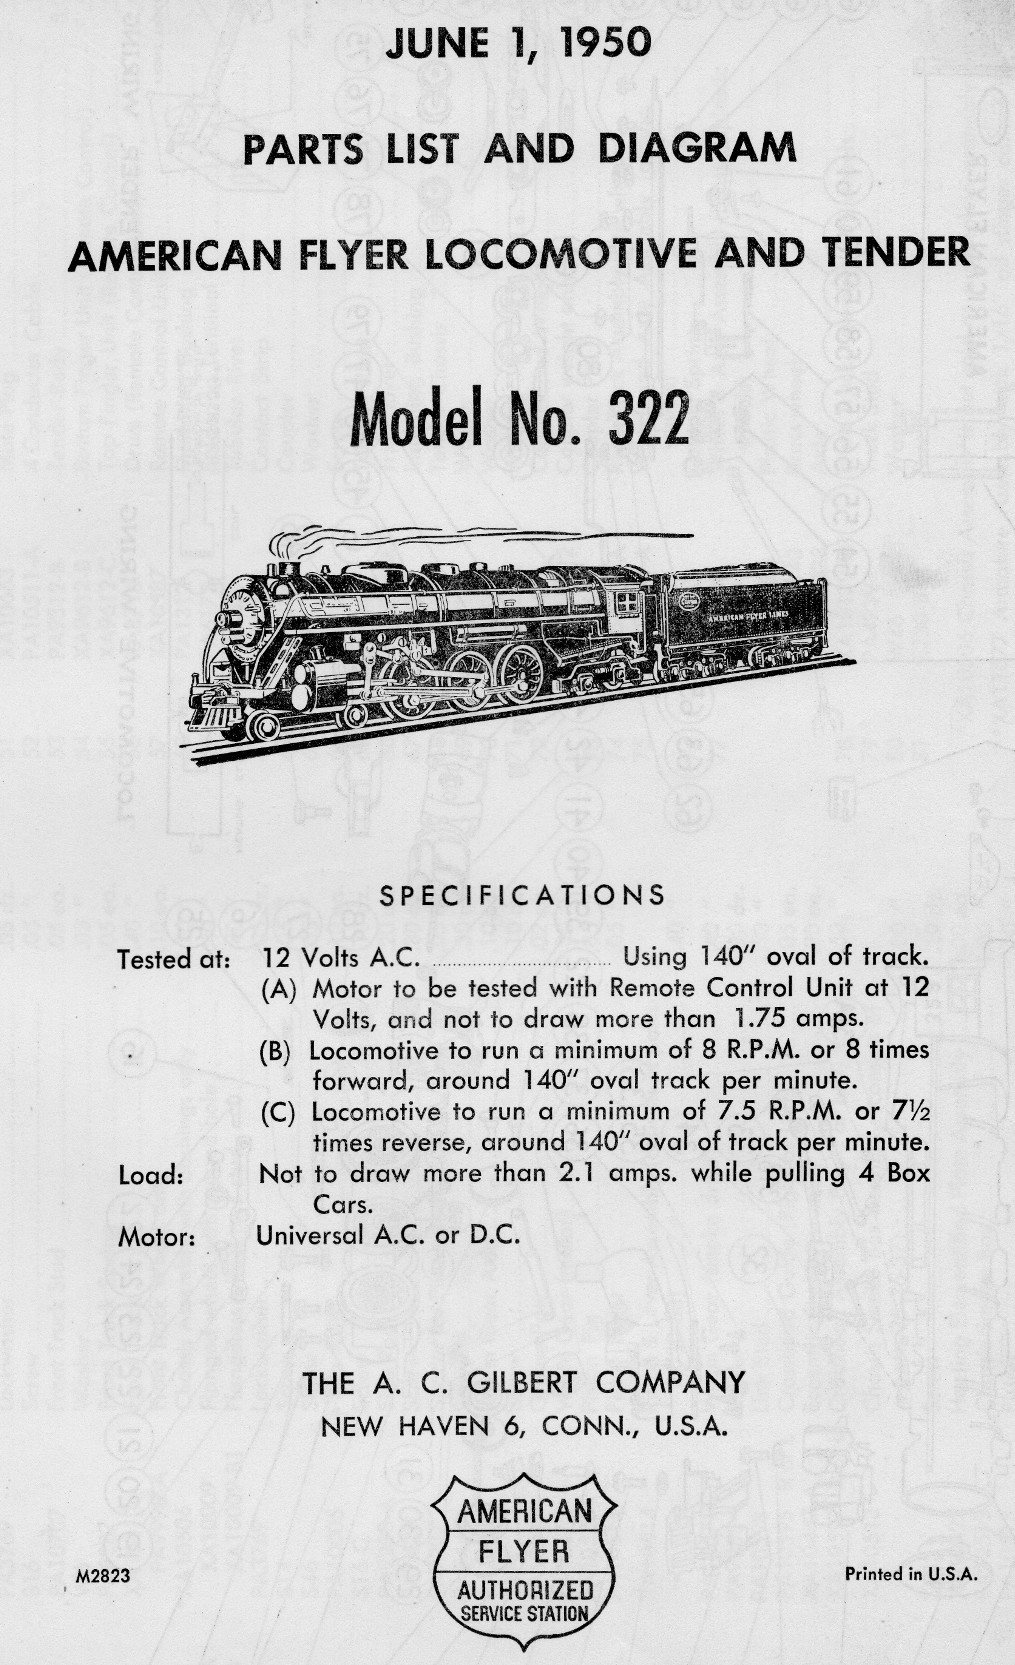 American Flyer Model 322 Parts List and Diagram